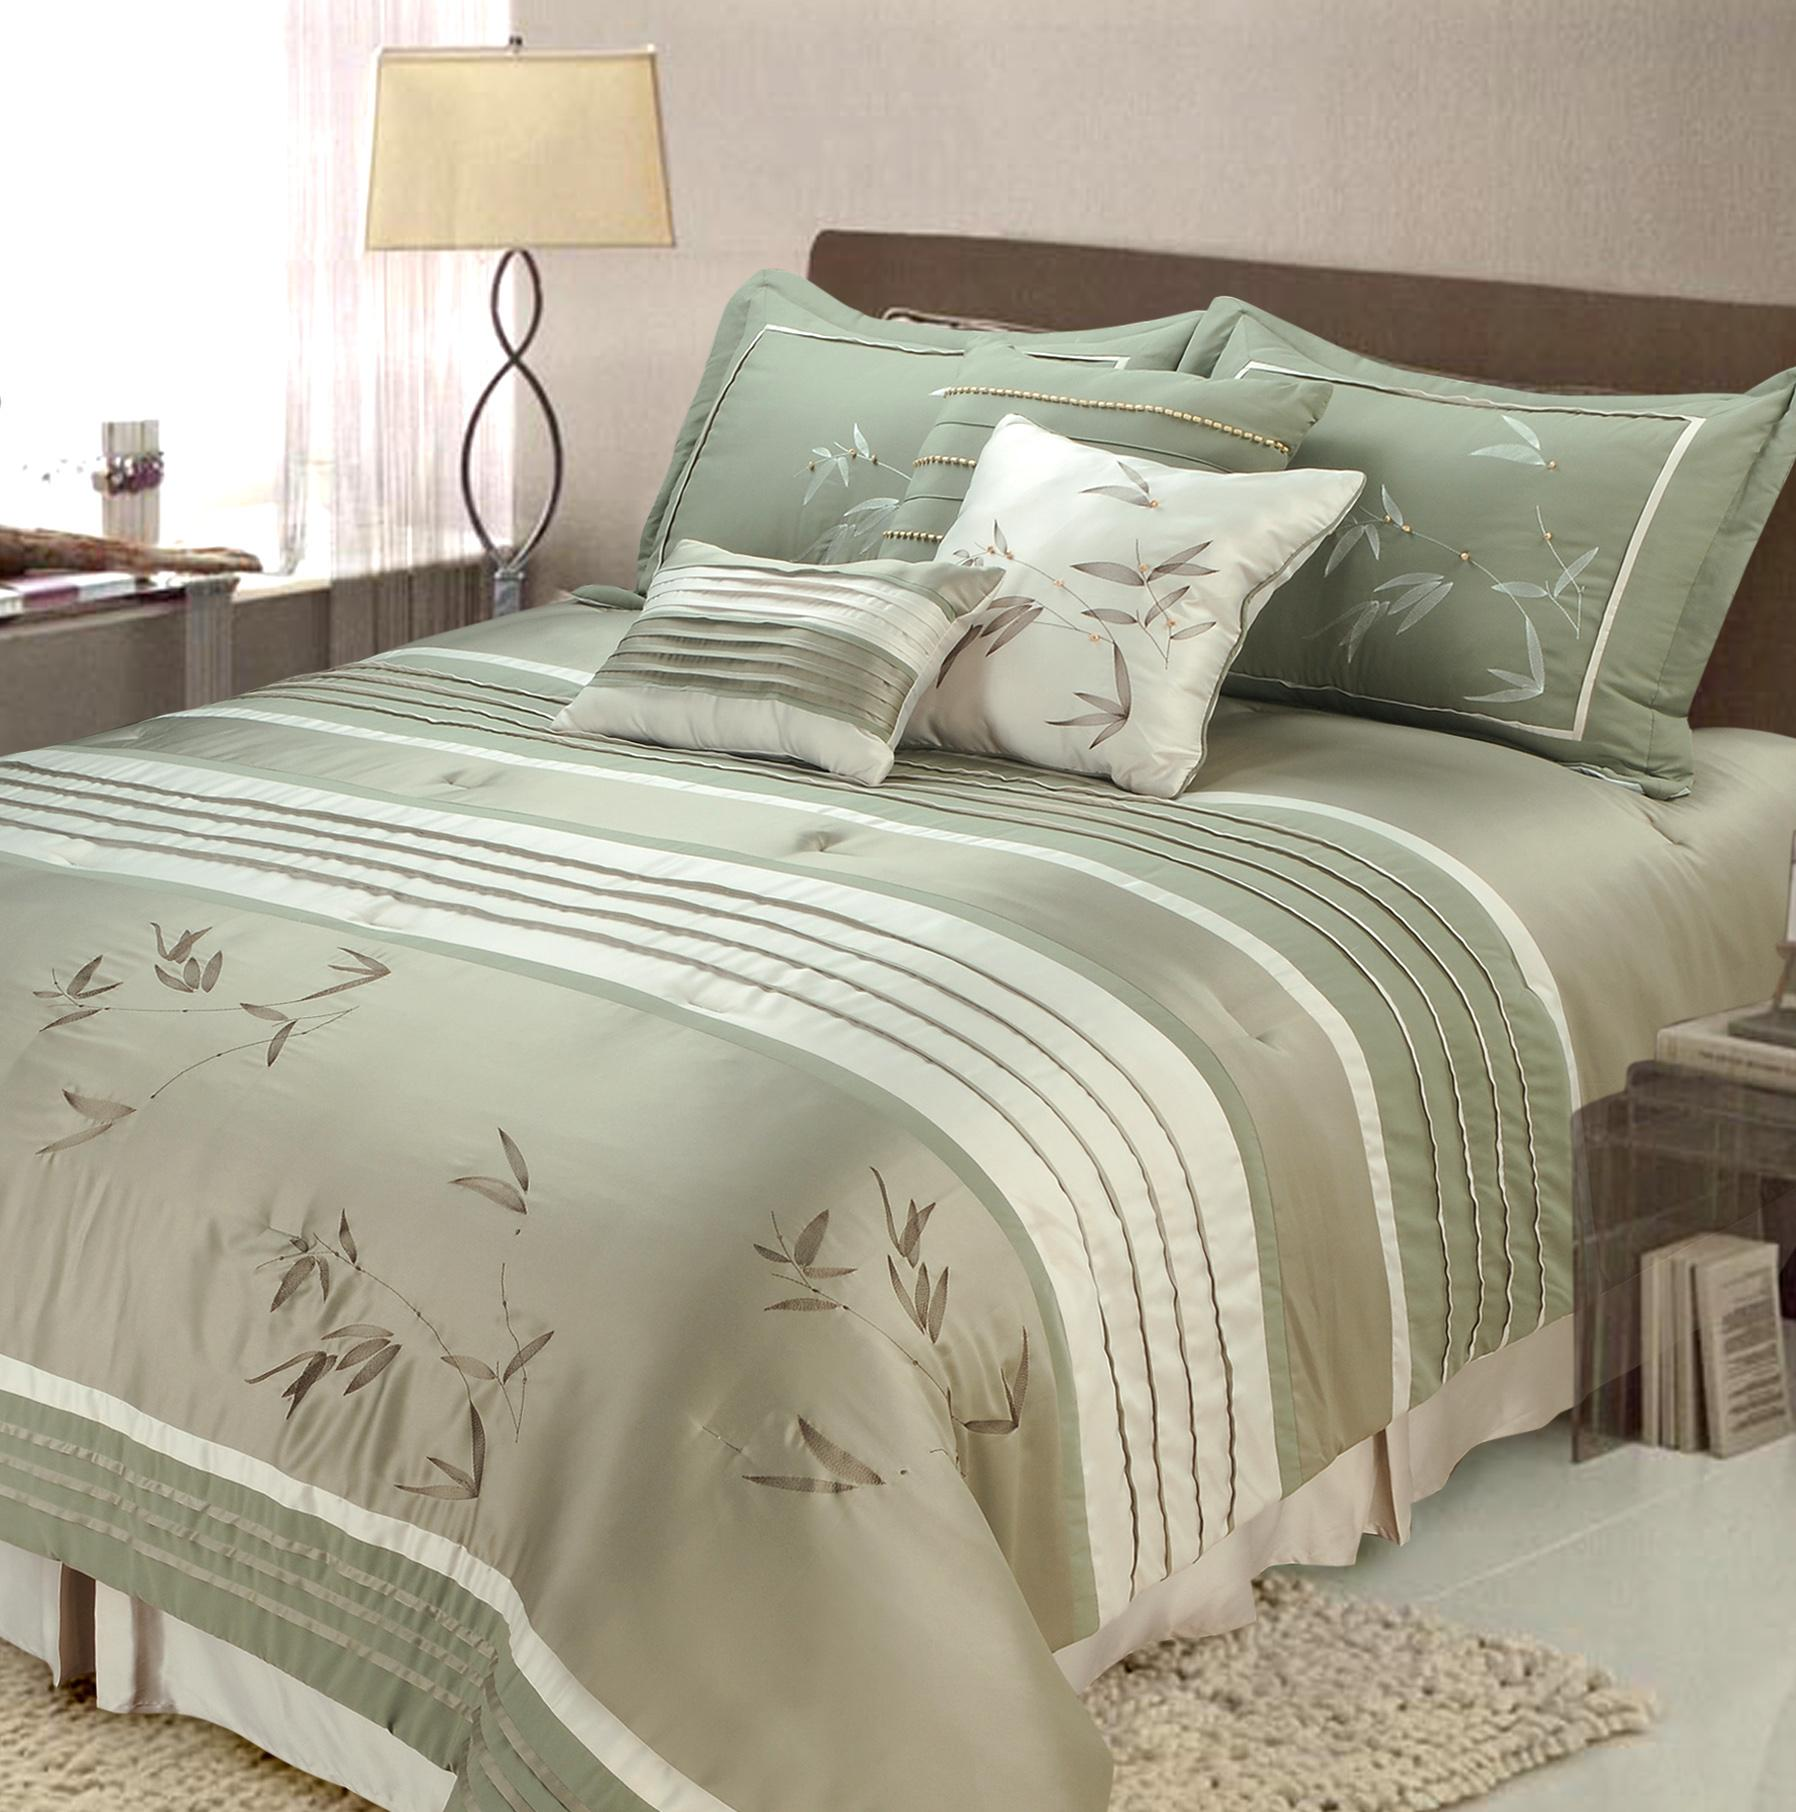 Classy full comforter sets Bed queen size and king bedsize also pillows and cushion combined with headboards and curtains